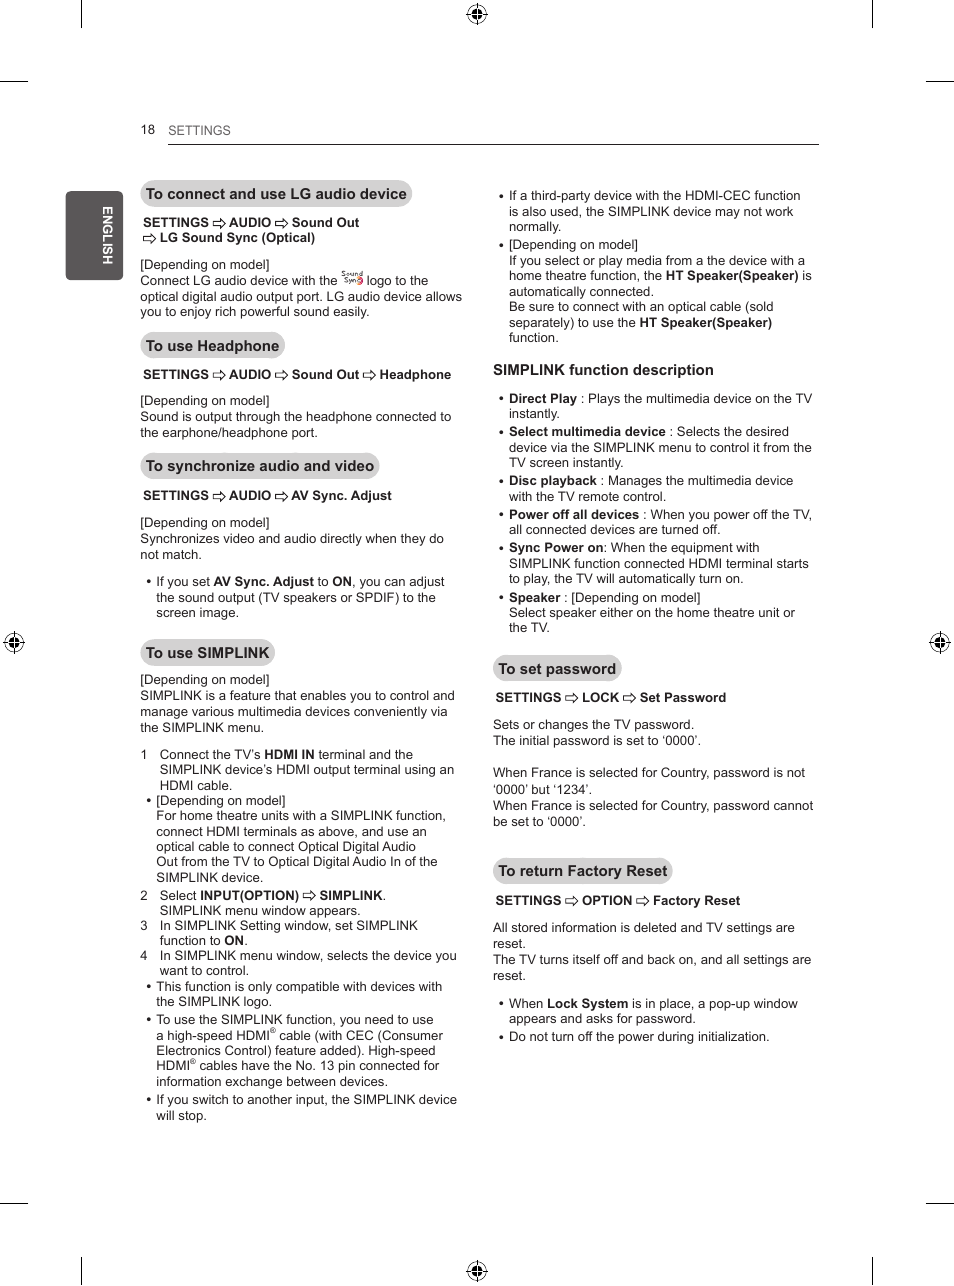 LG 50PB560U User Manual | Page 37 / 227 | Also for: 60PB560V